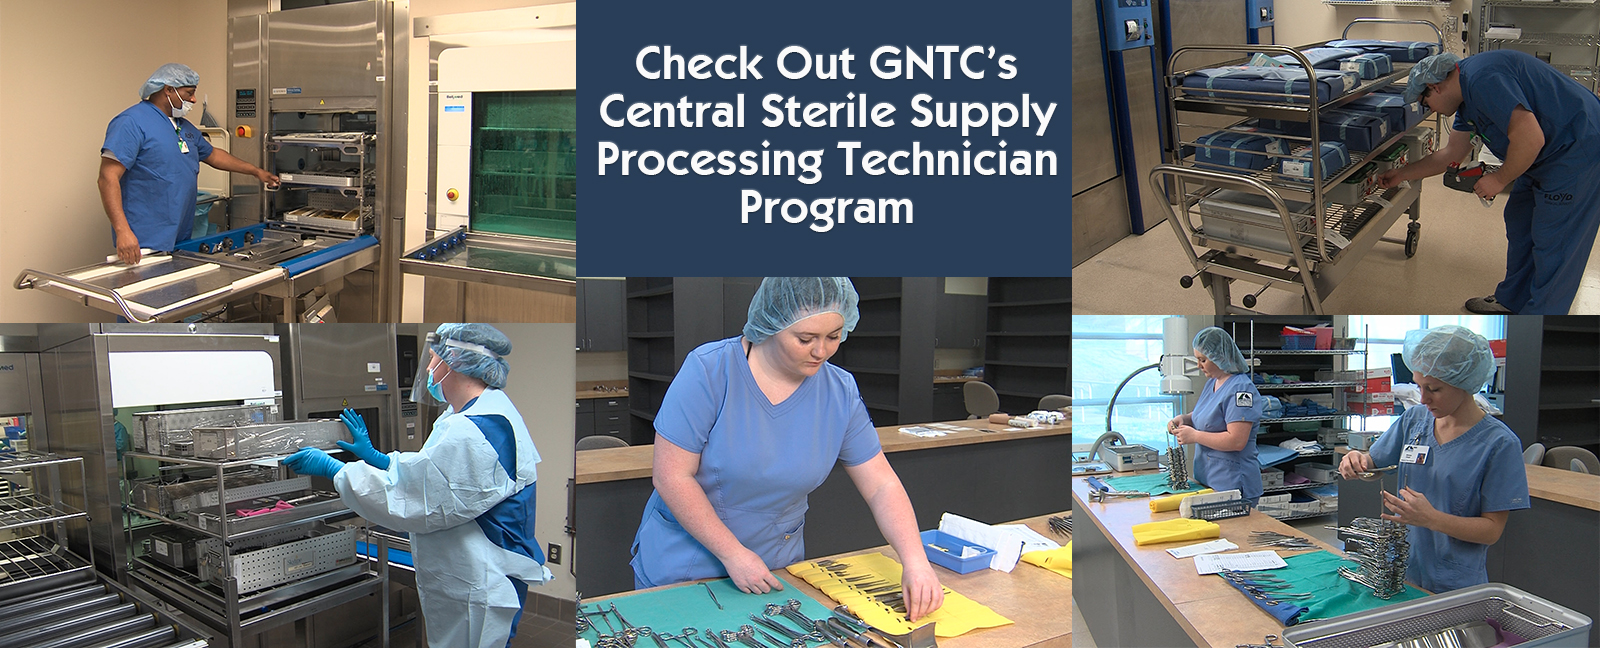 Check Out GNTC's Central Sterile Supply Processing Technician Program